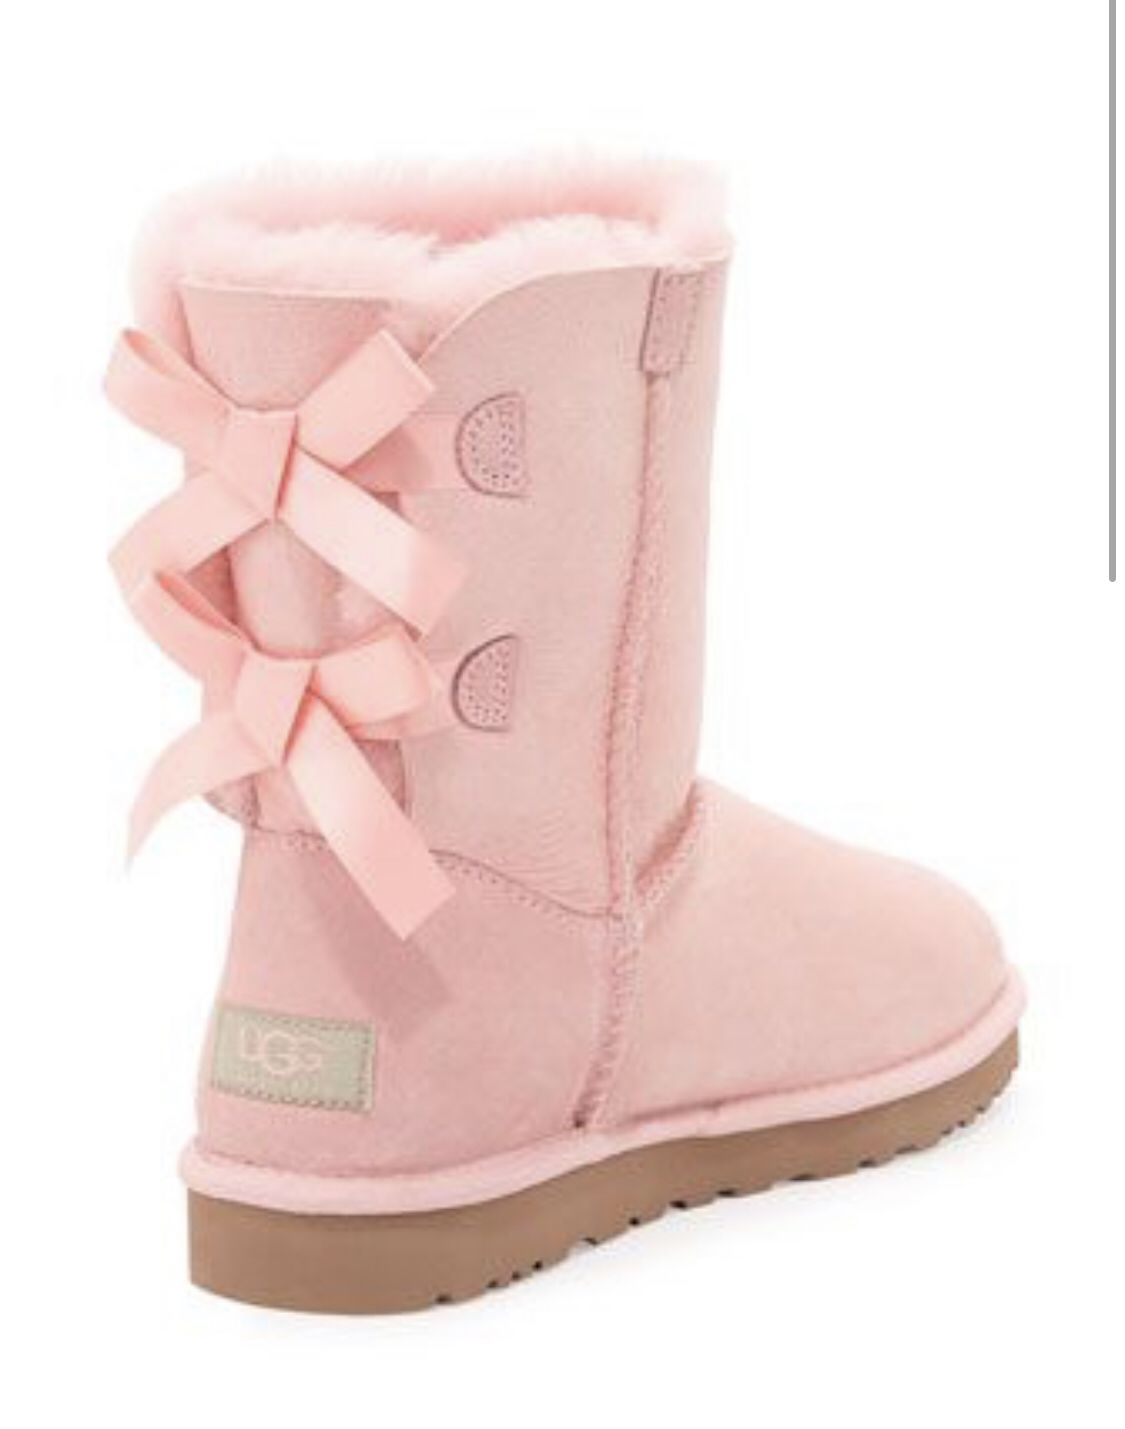 f50790b8ee0 Two bows | Uggs in 2019 | Pink uggs, Ugg boots australia, Uggs